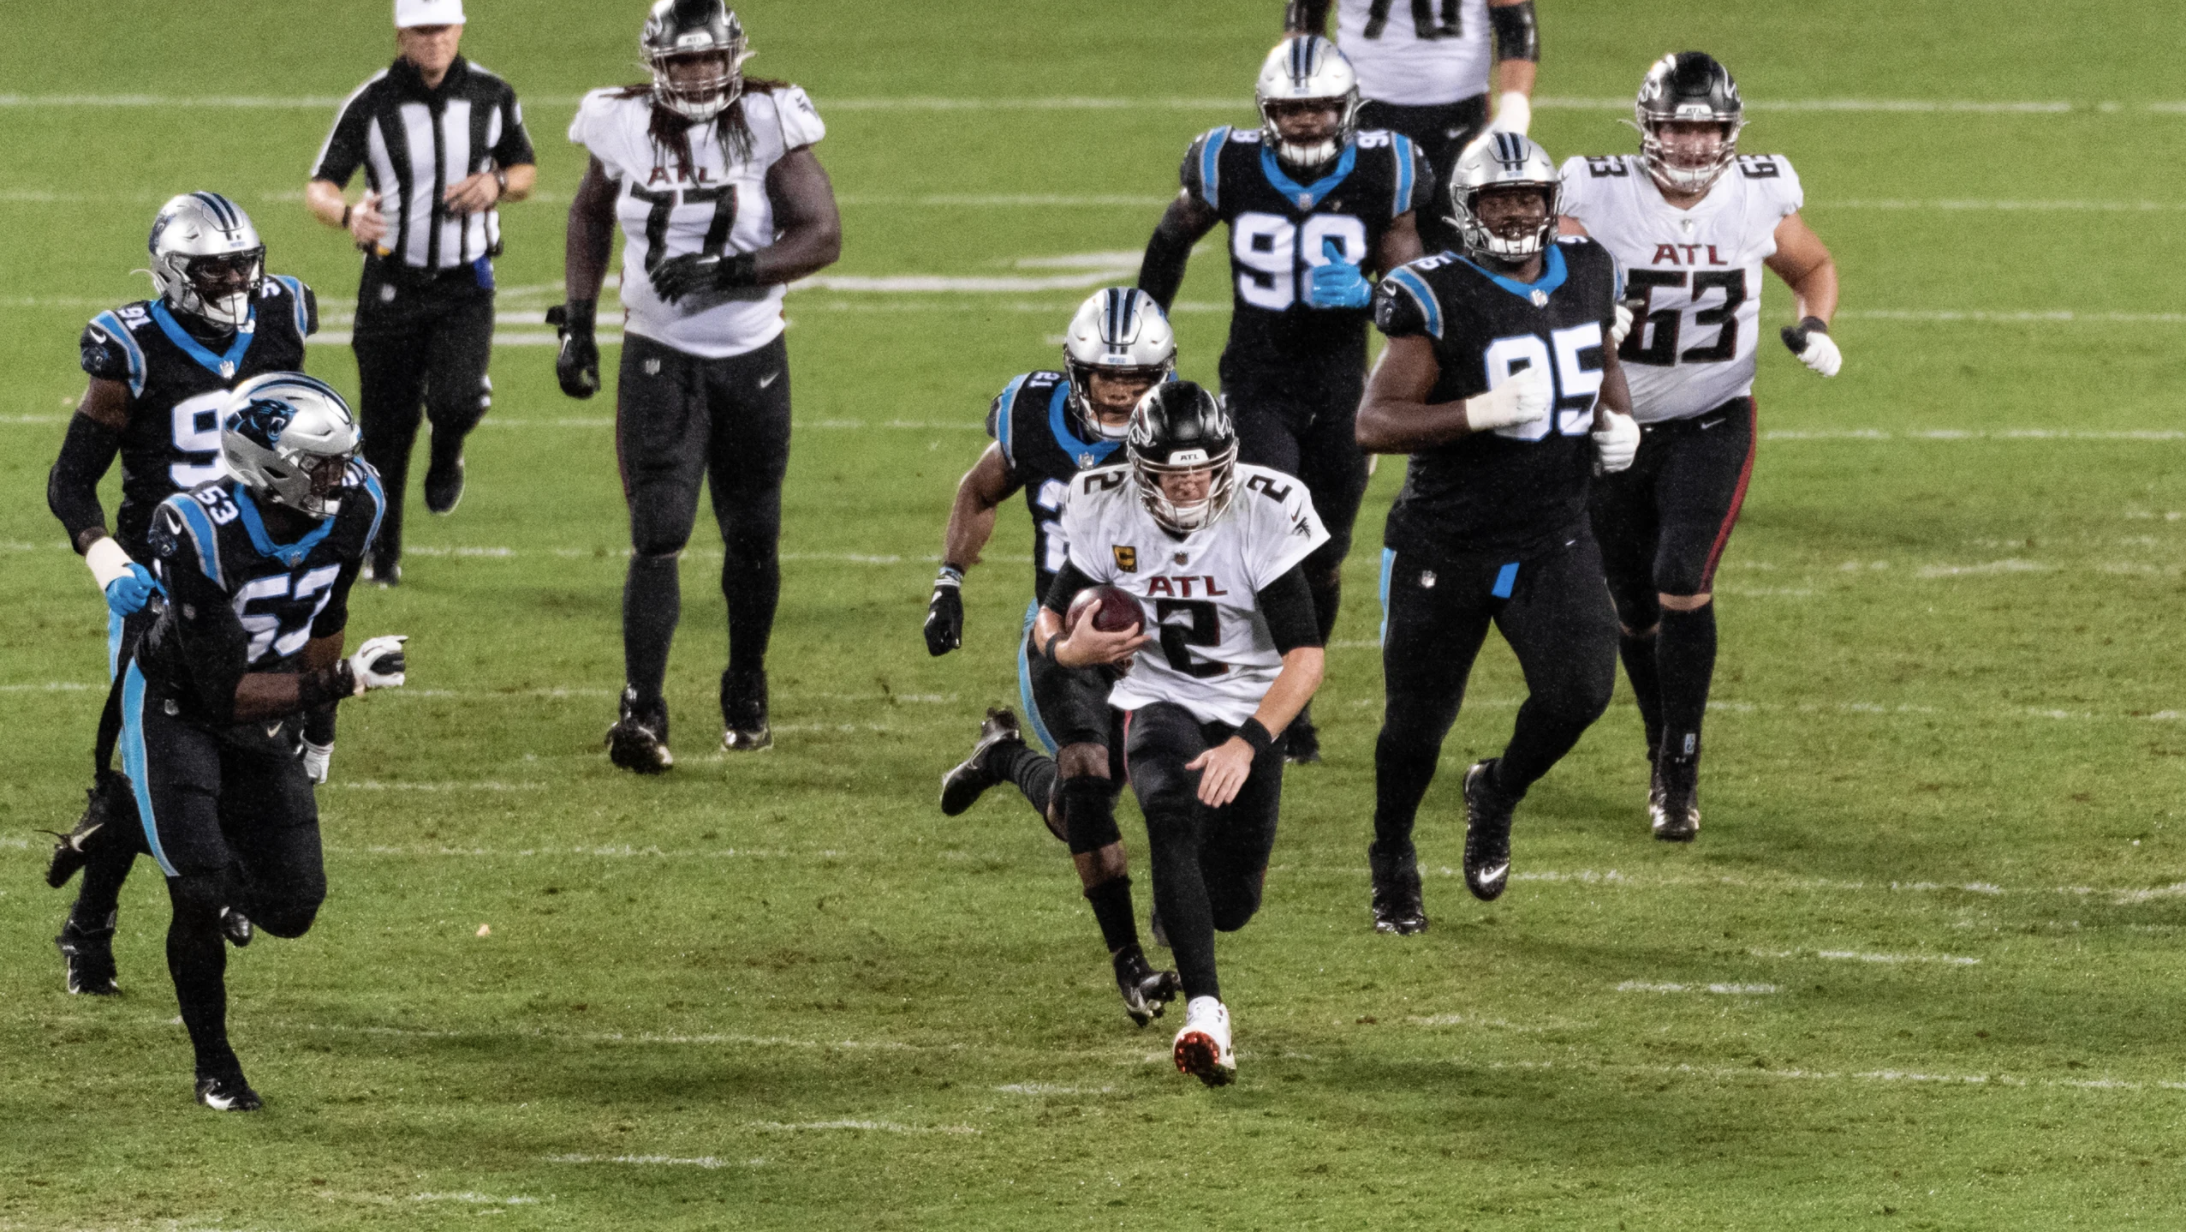 With Unforced Errors and Mental Mistakes, Panthers Clearly Still Rebuilding